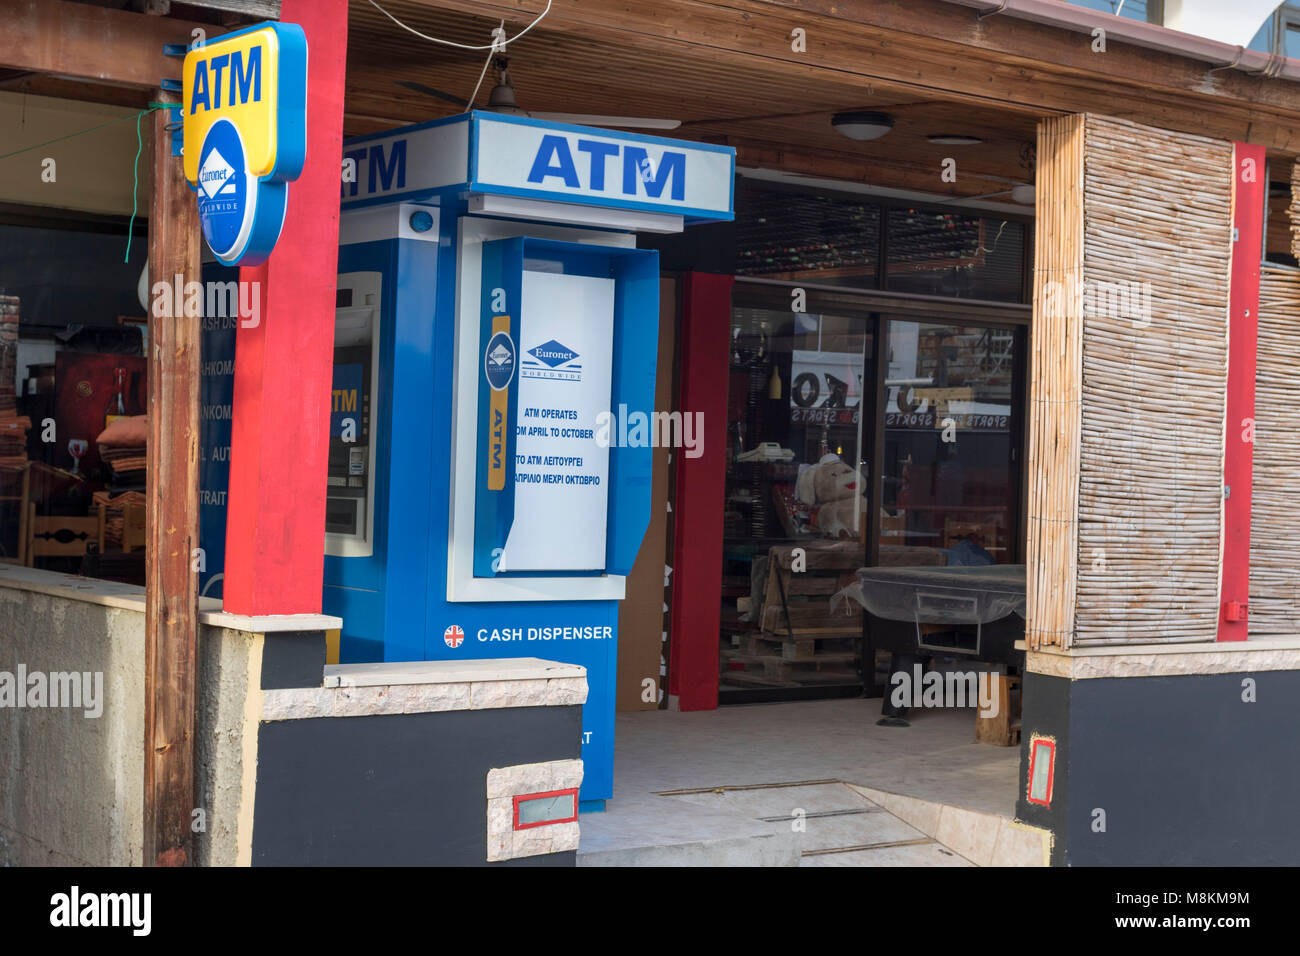 Shopfront in Cyprus with auto teller machines in front, Cyprus, Mediterranean - Stock Image